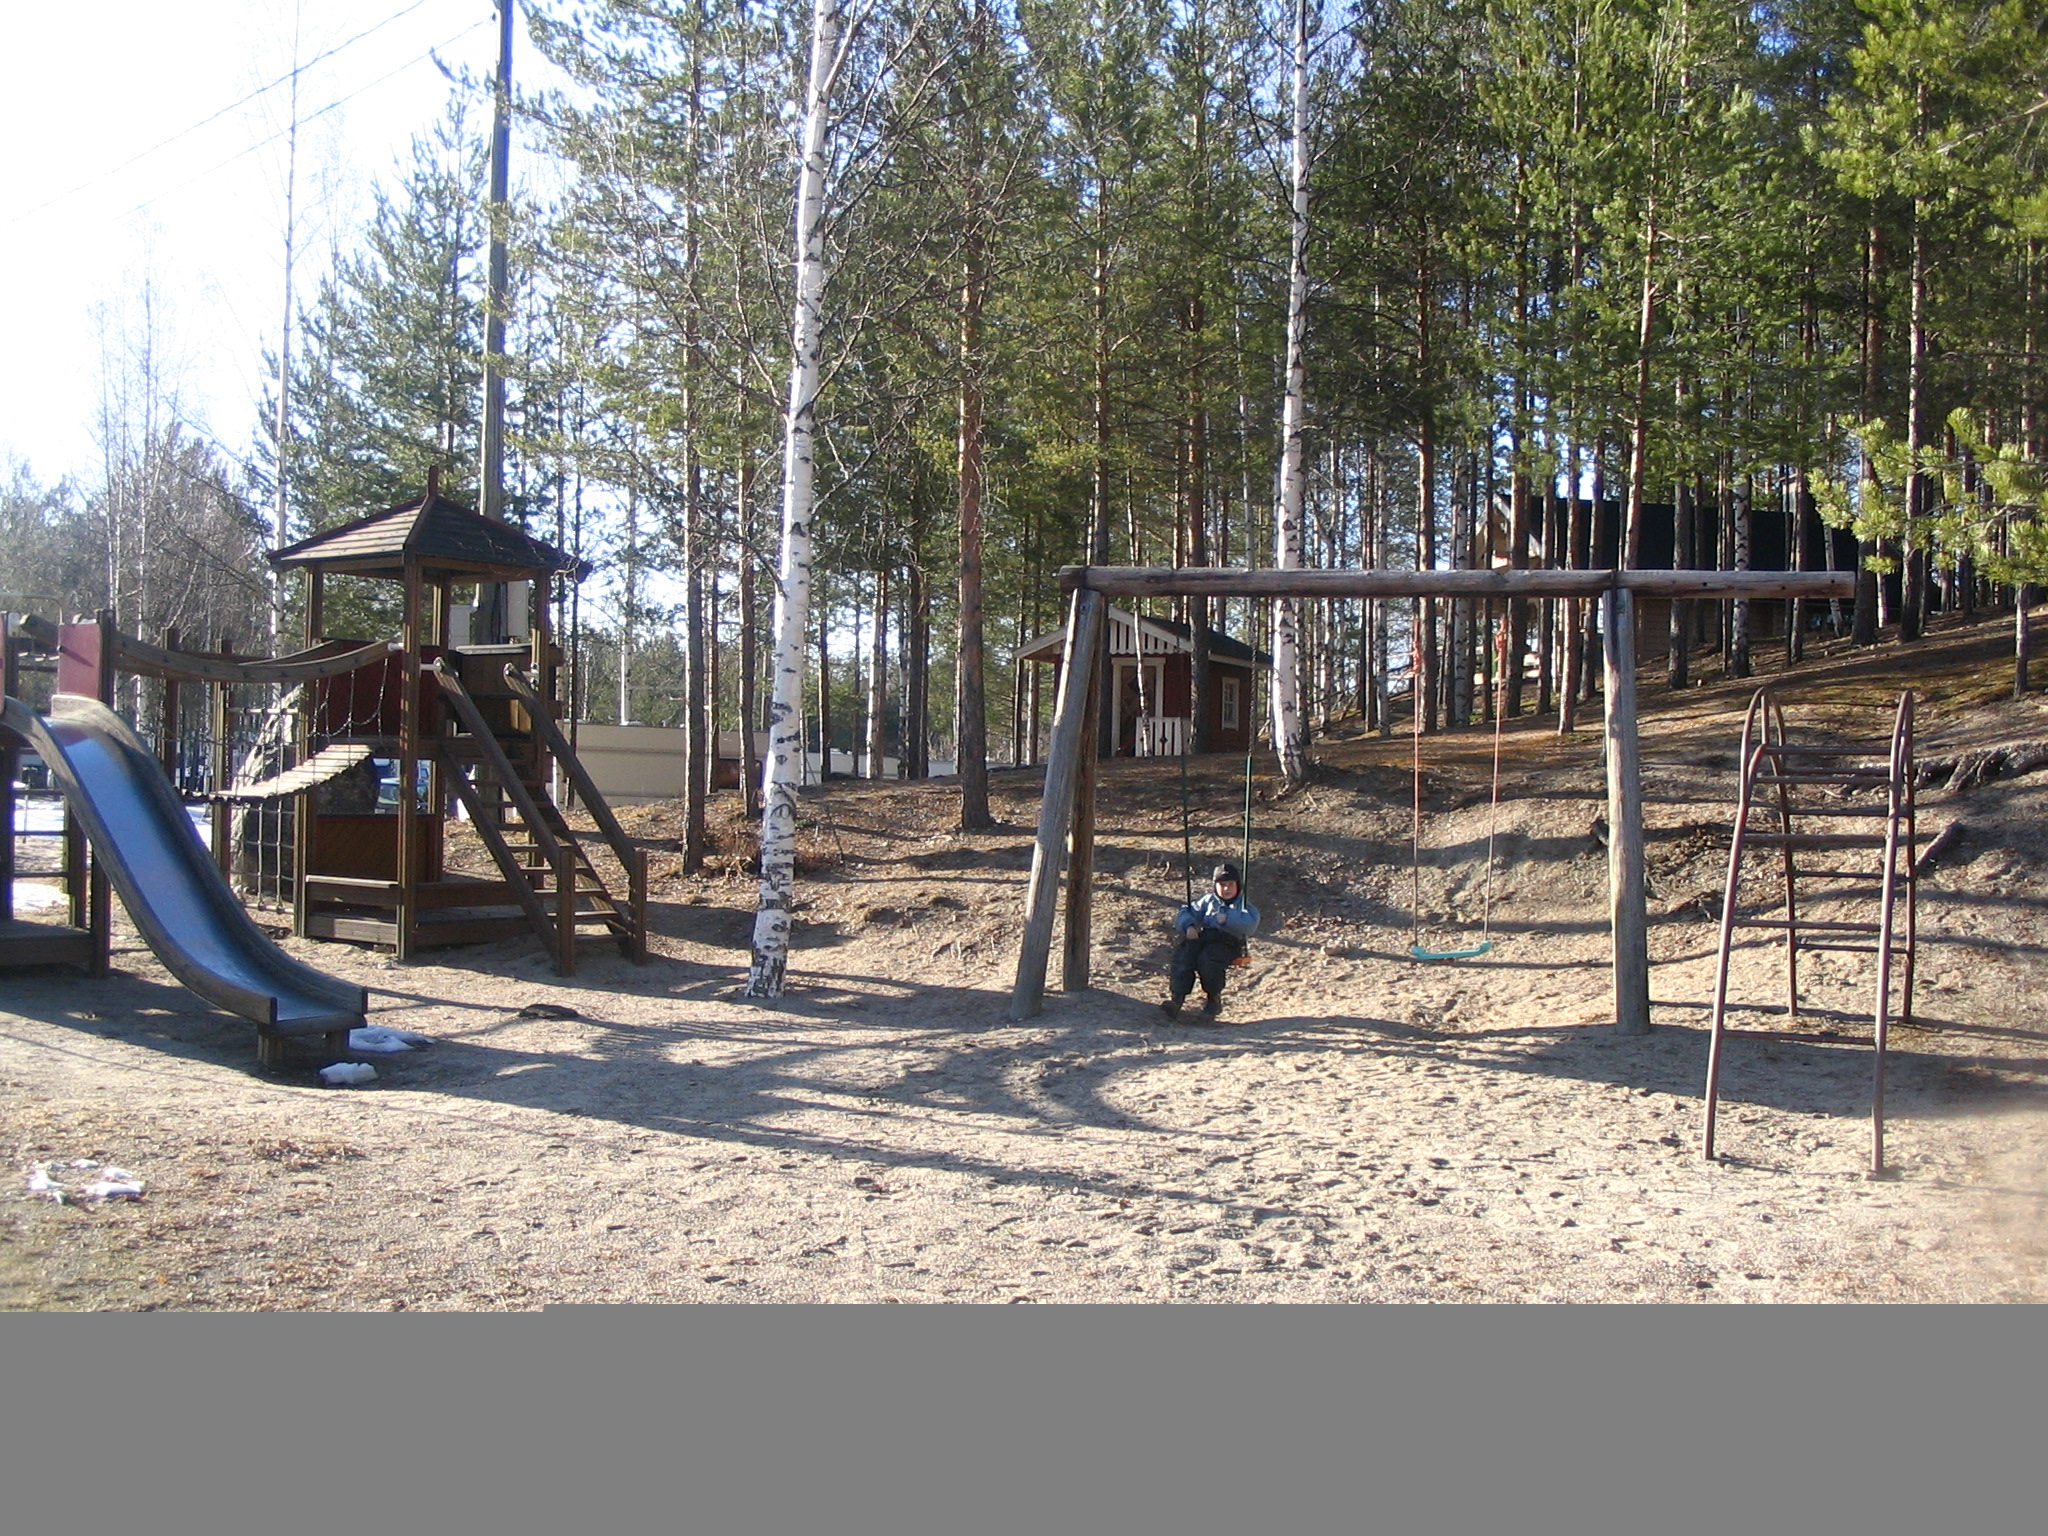 The playground of Rekiniemi